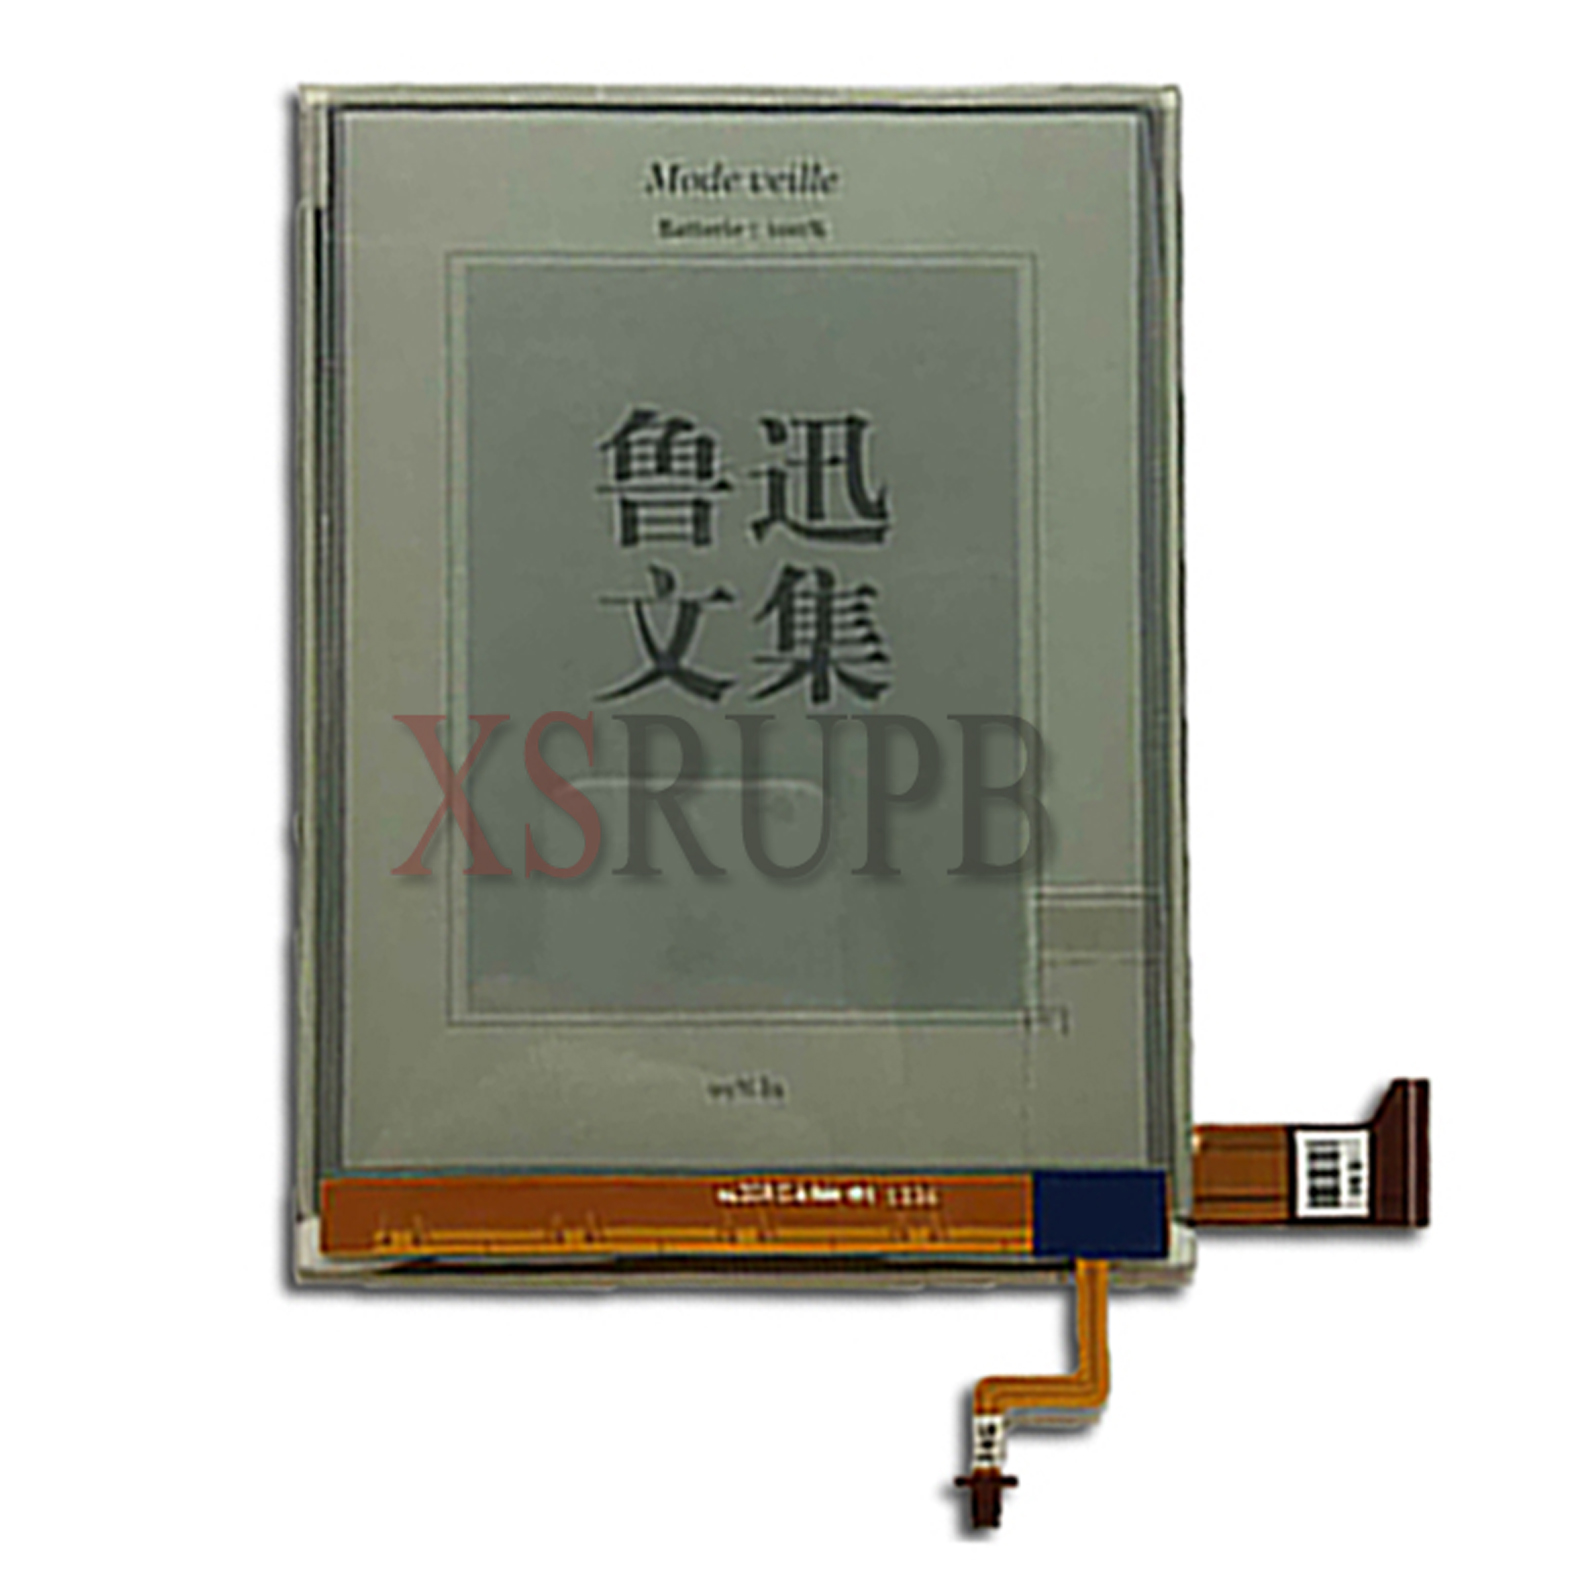 NEW Original 6.0inch E-Ink 768*1024 HD XGA Pearl Screen Glass For Onyx boox i62ml aurora Reader Ebook eReader LCD Display Panel 6inch e ink ebook ereader ed060xg1 lf t1 11 ed060xg1t1 11 768 1024 hd xga pearl screen for kobo glo reader lcd display